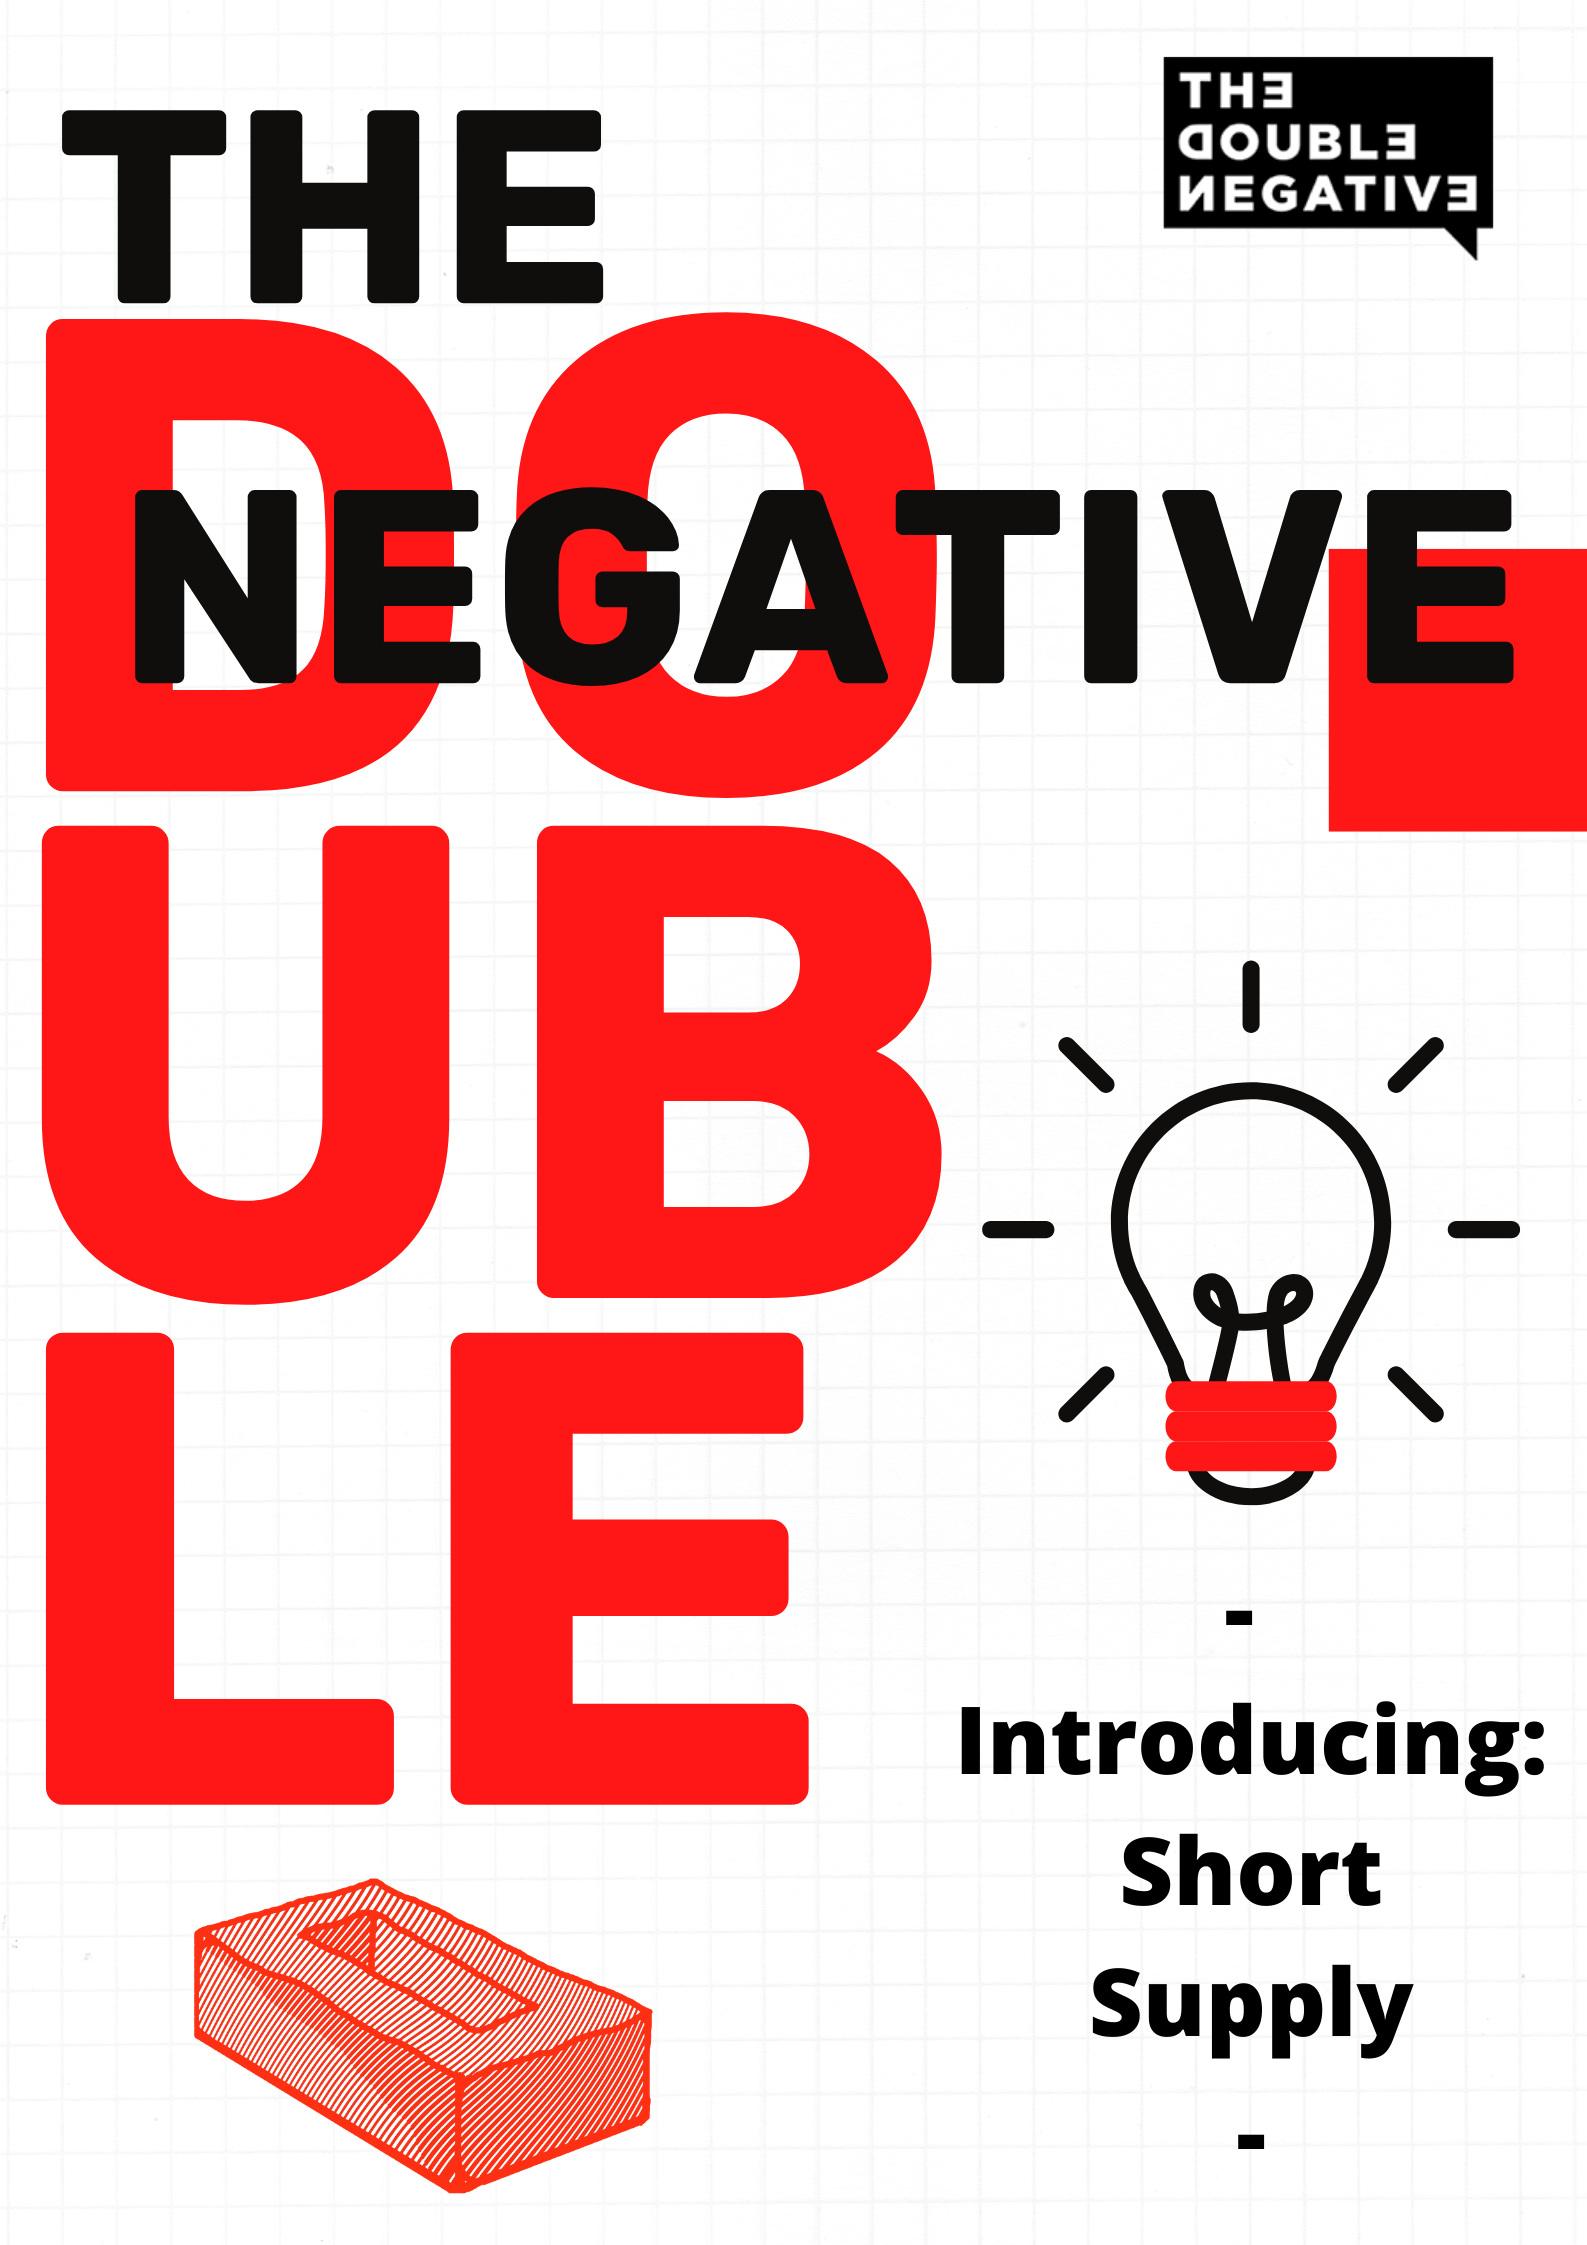 The Double Negative Interview